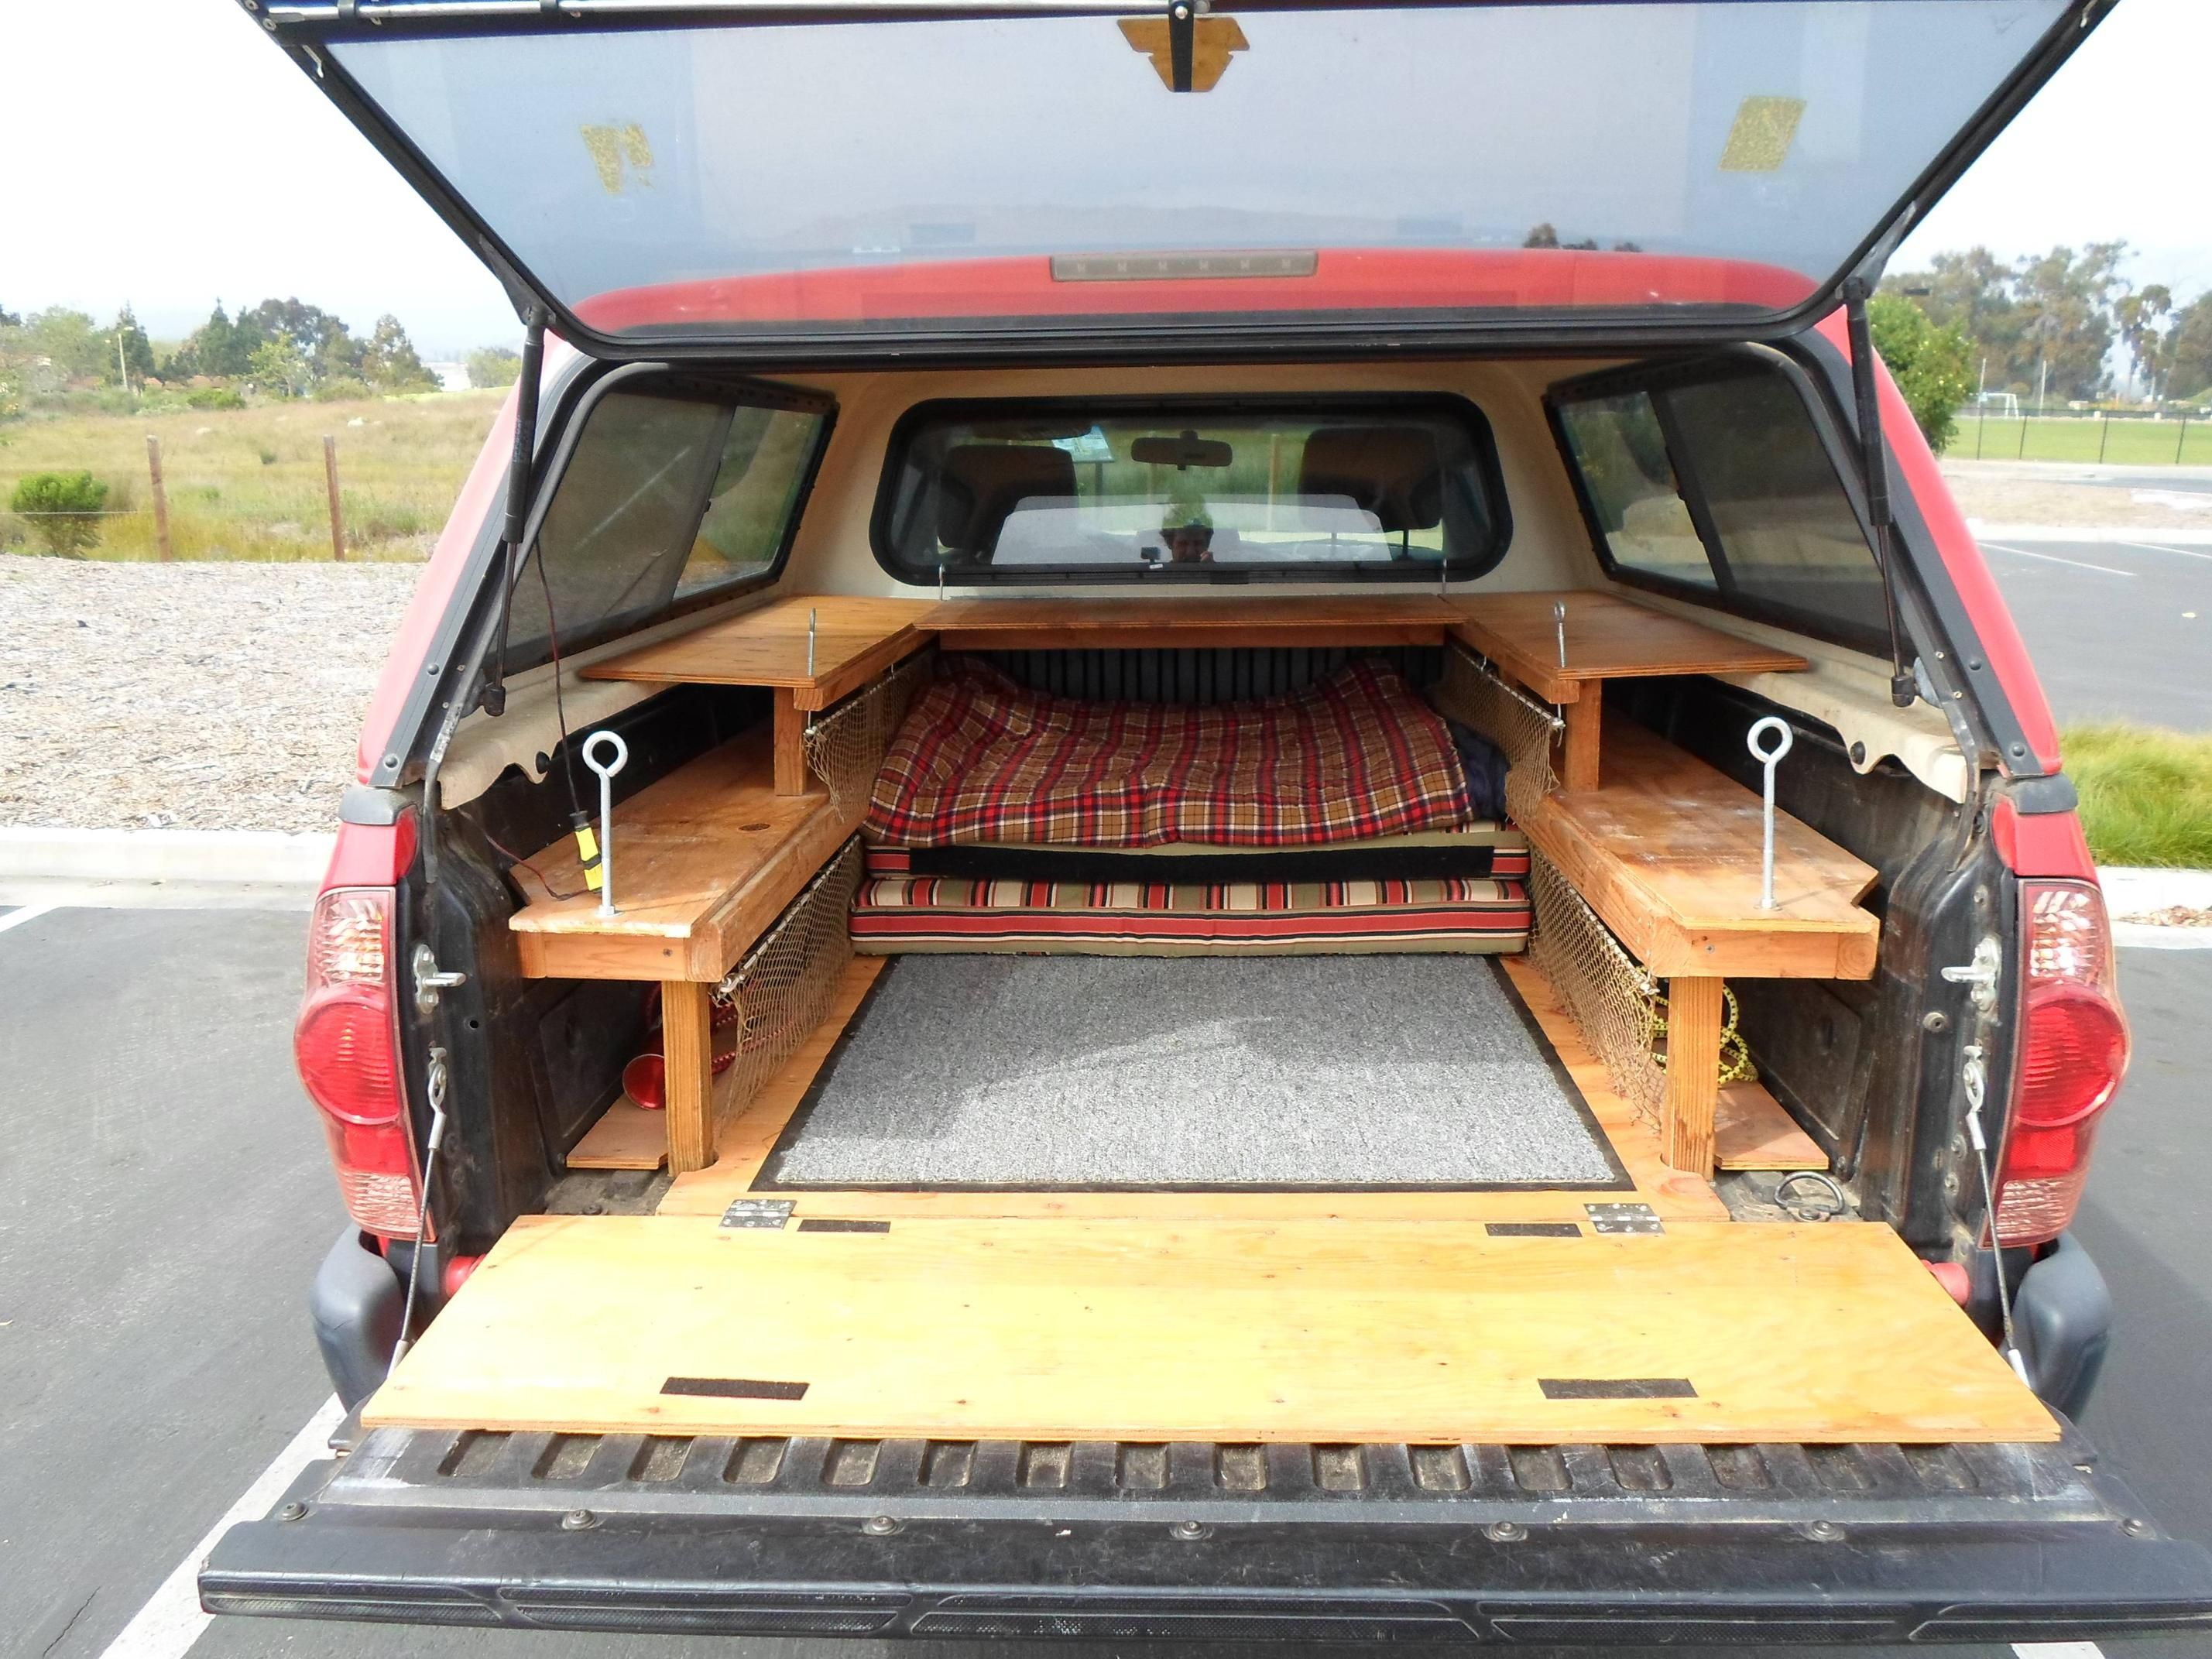 Truck Camping Truck toppers, Truck bed and Truck camping